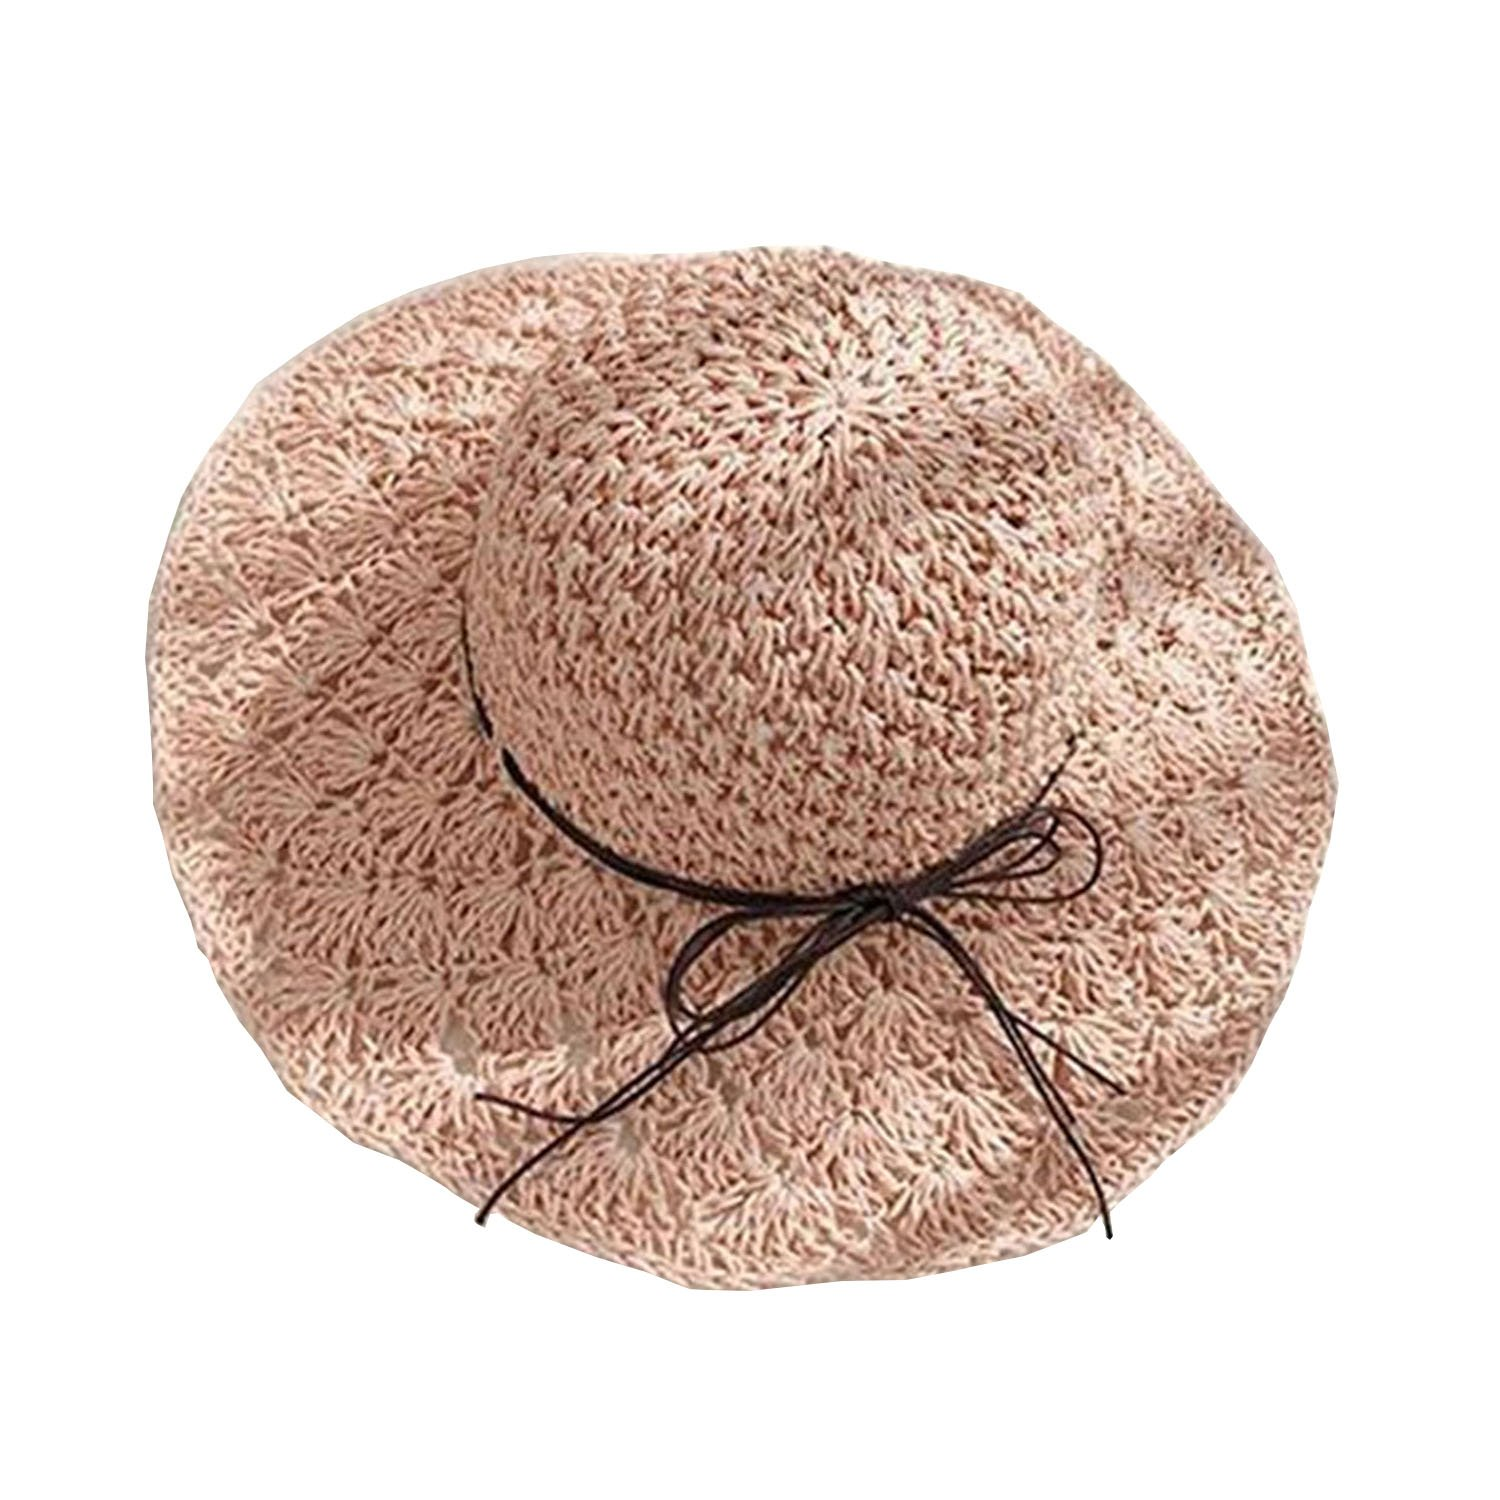 9c489d1365b BOW Womens Foldable Straw Hat Floppy Hat Sun Hat Summer Beach Hat Topee for  Girls with Bowknot (Beige)  Amazon.ca  Clothing   Accessories